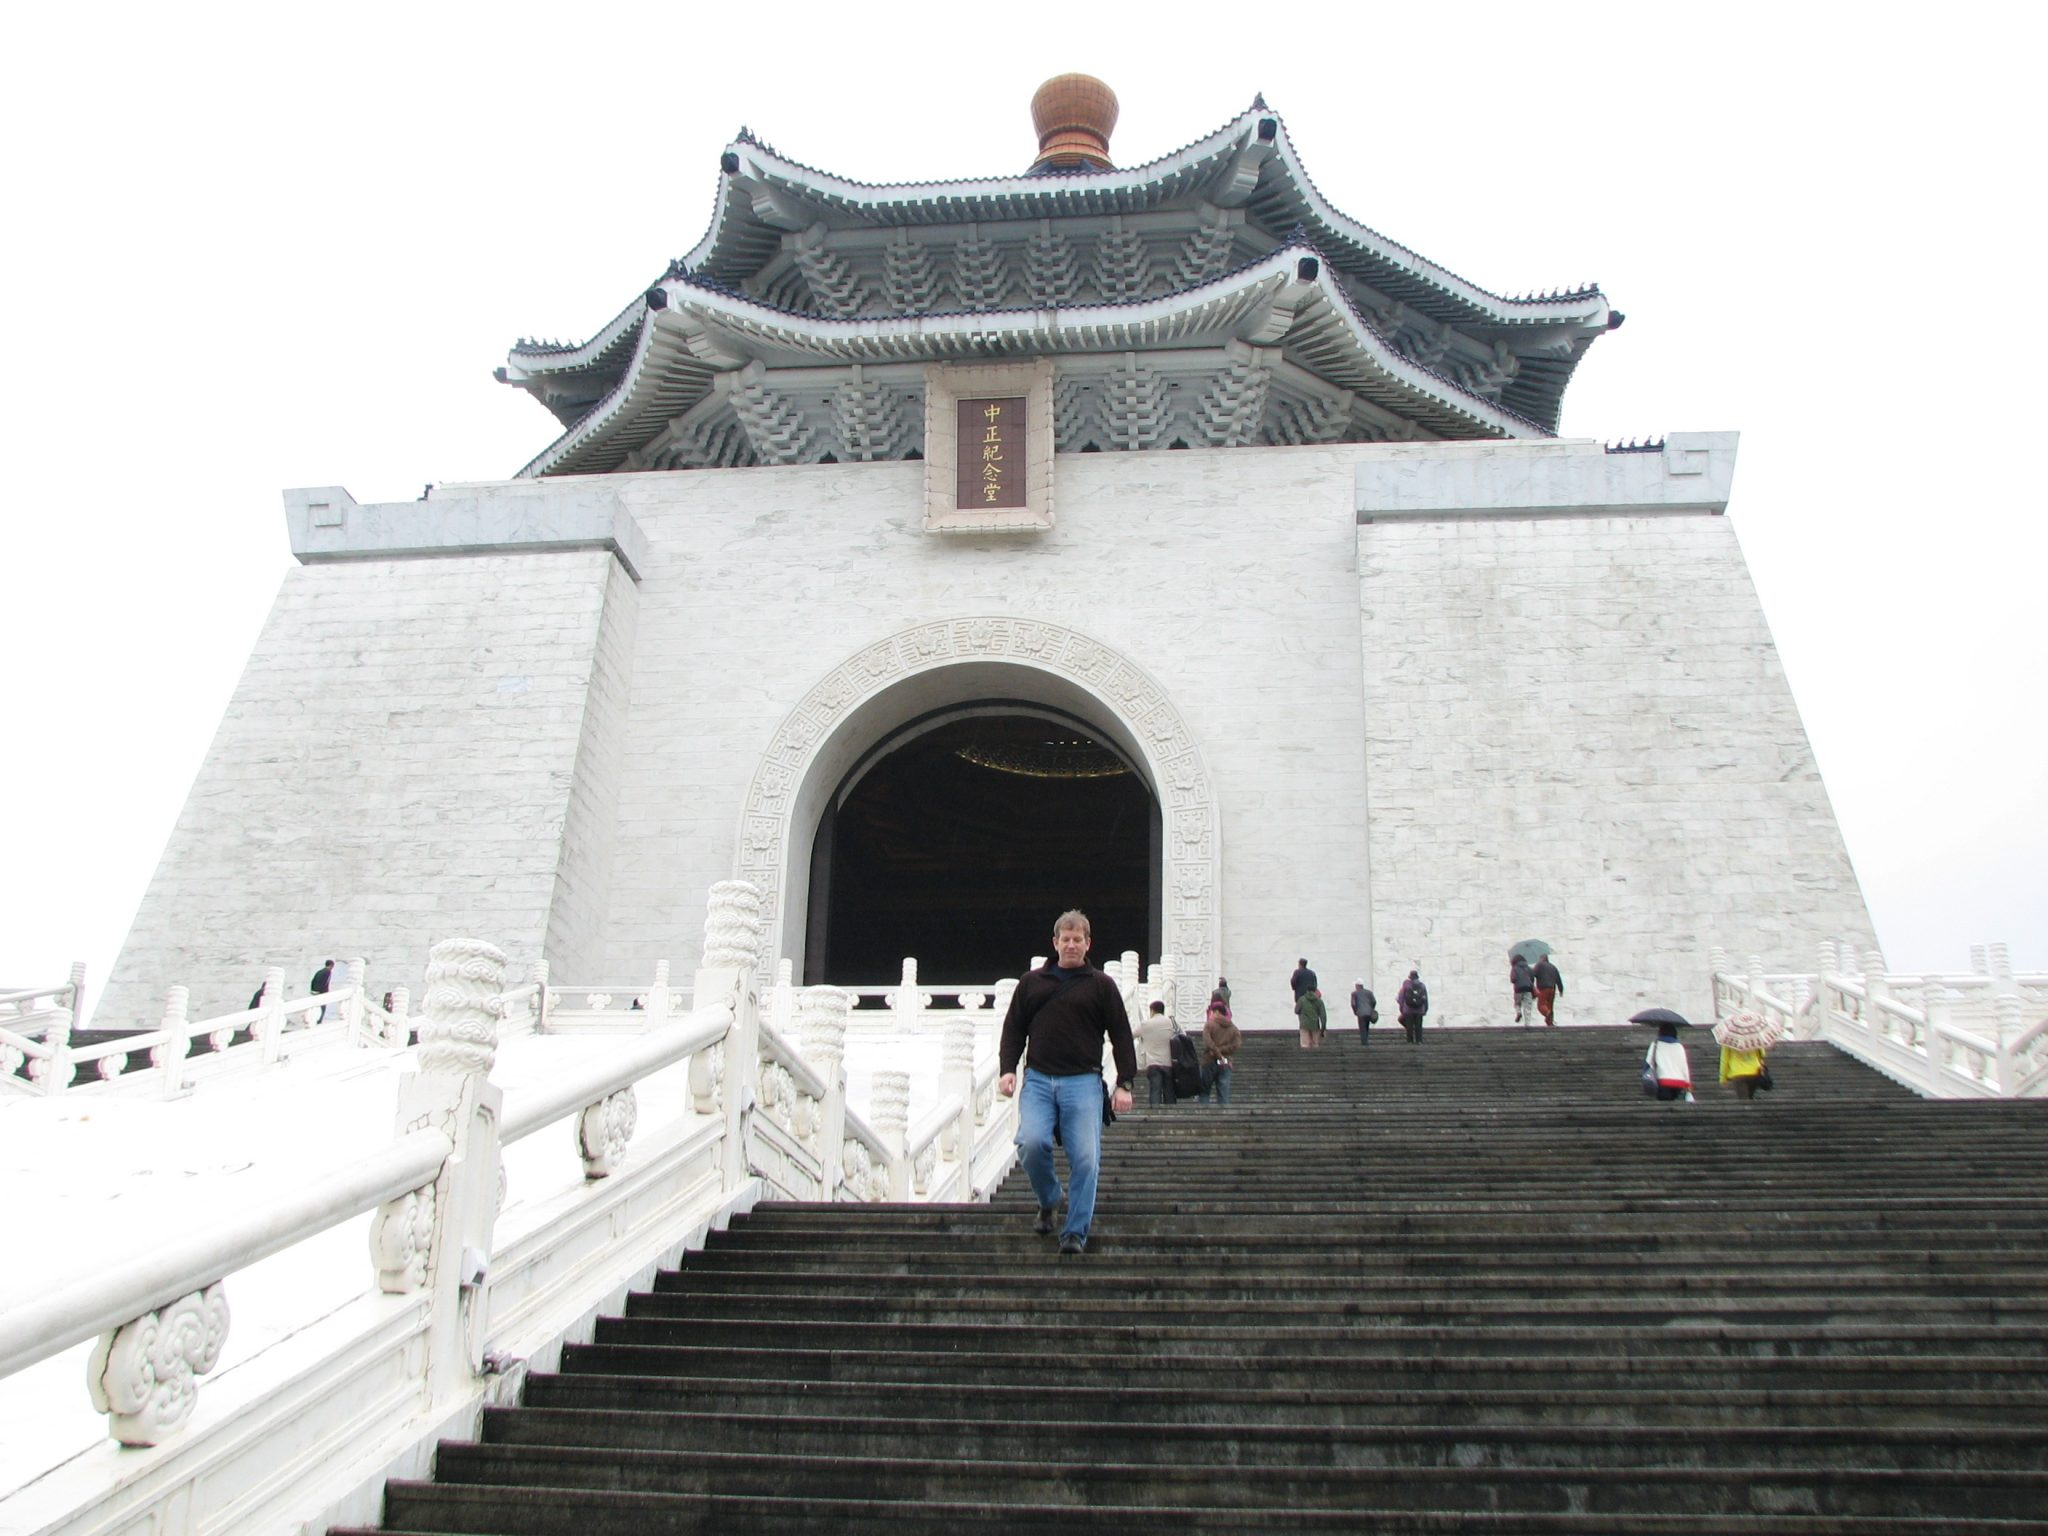 Descending the stairs of the Chiang Kai-shek Memorial Hall.